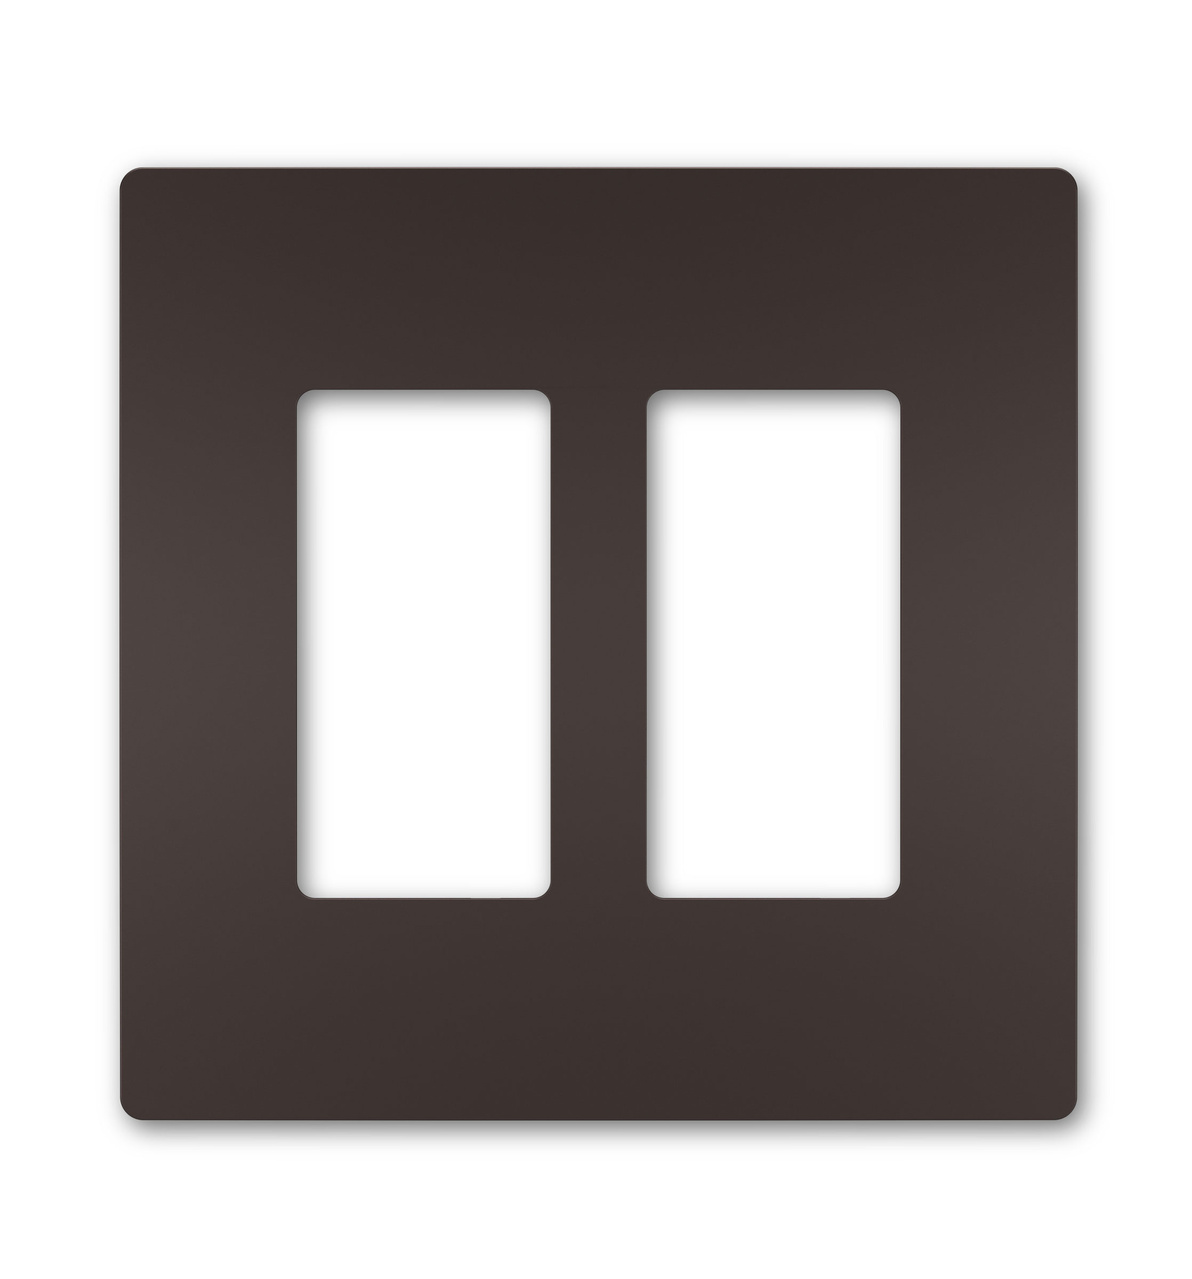 Two-Gang Screwless Wall Plate, Dark Bronze